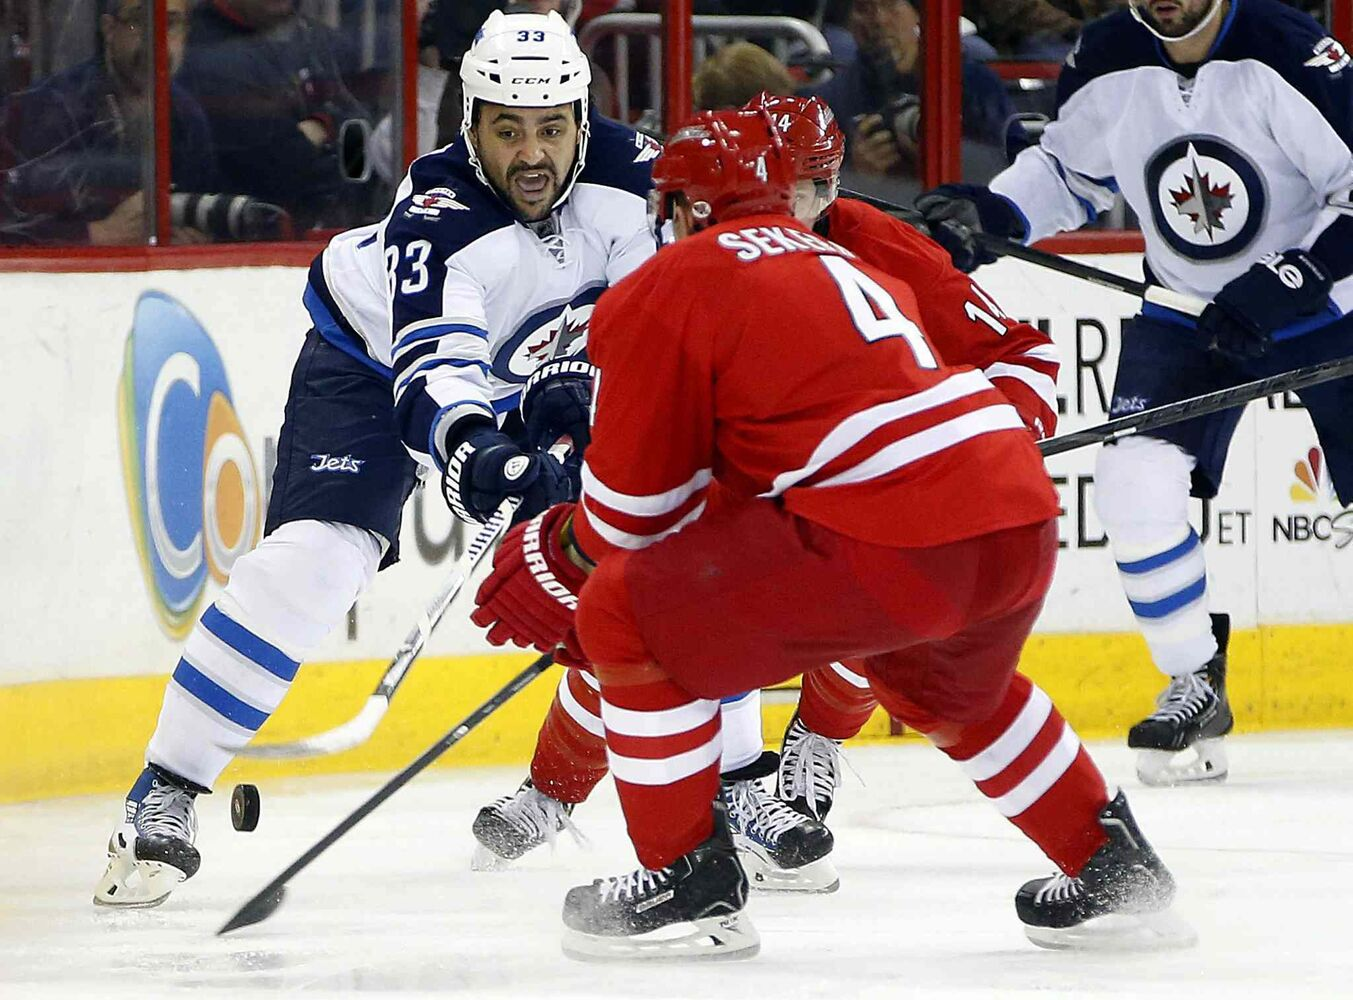 Winnipeg Jets' Dustin Byfuglien (33) tries to clear the puck past Carolina Hurricanes' Andrej Sekera (4) in the first period of Tuesday's hockey game.